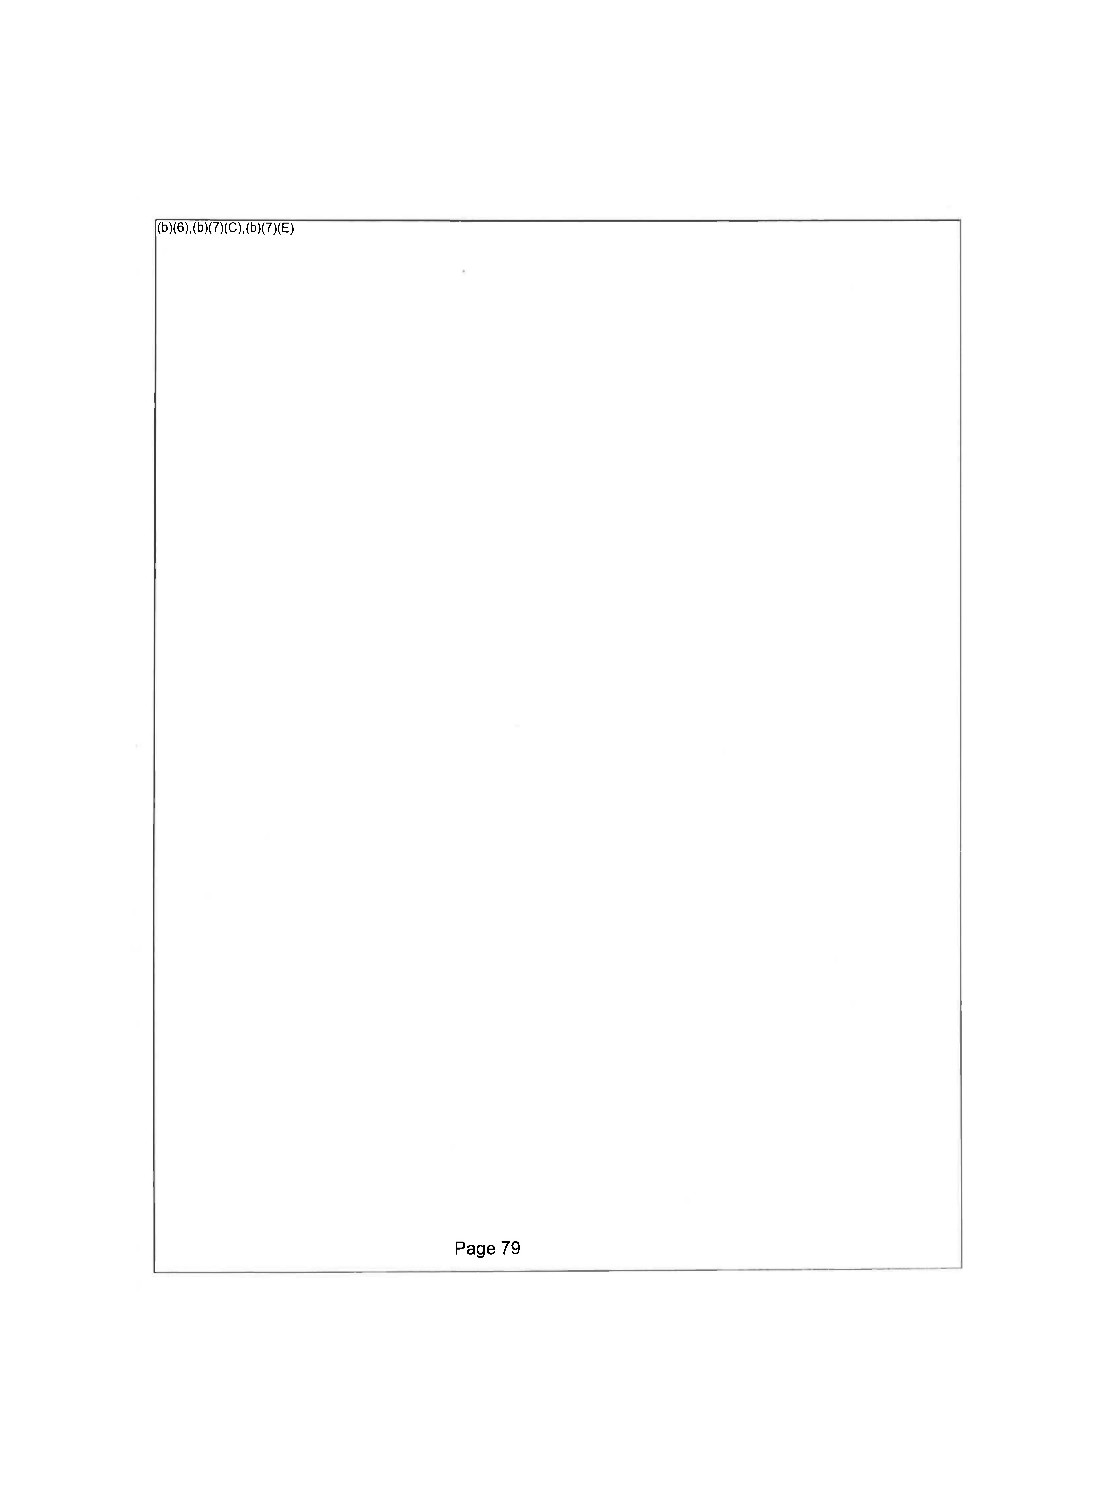 A completely redacted document